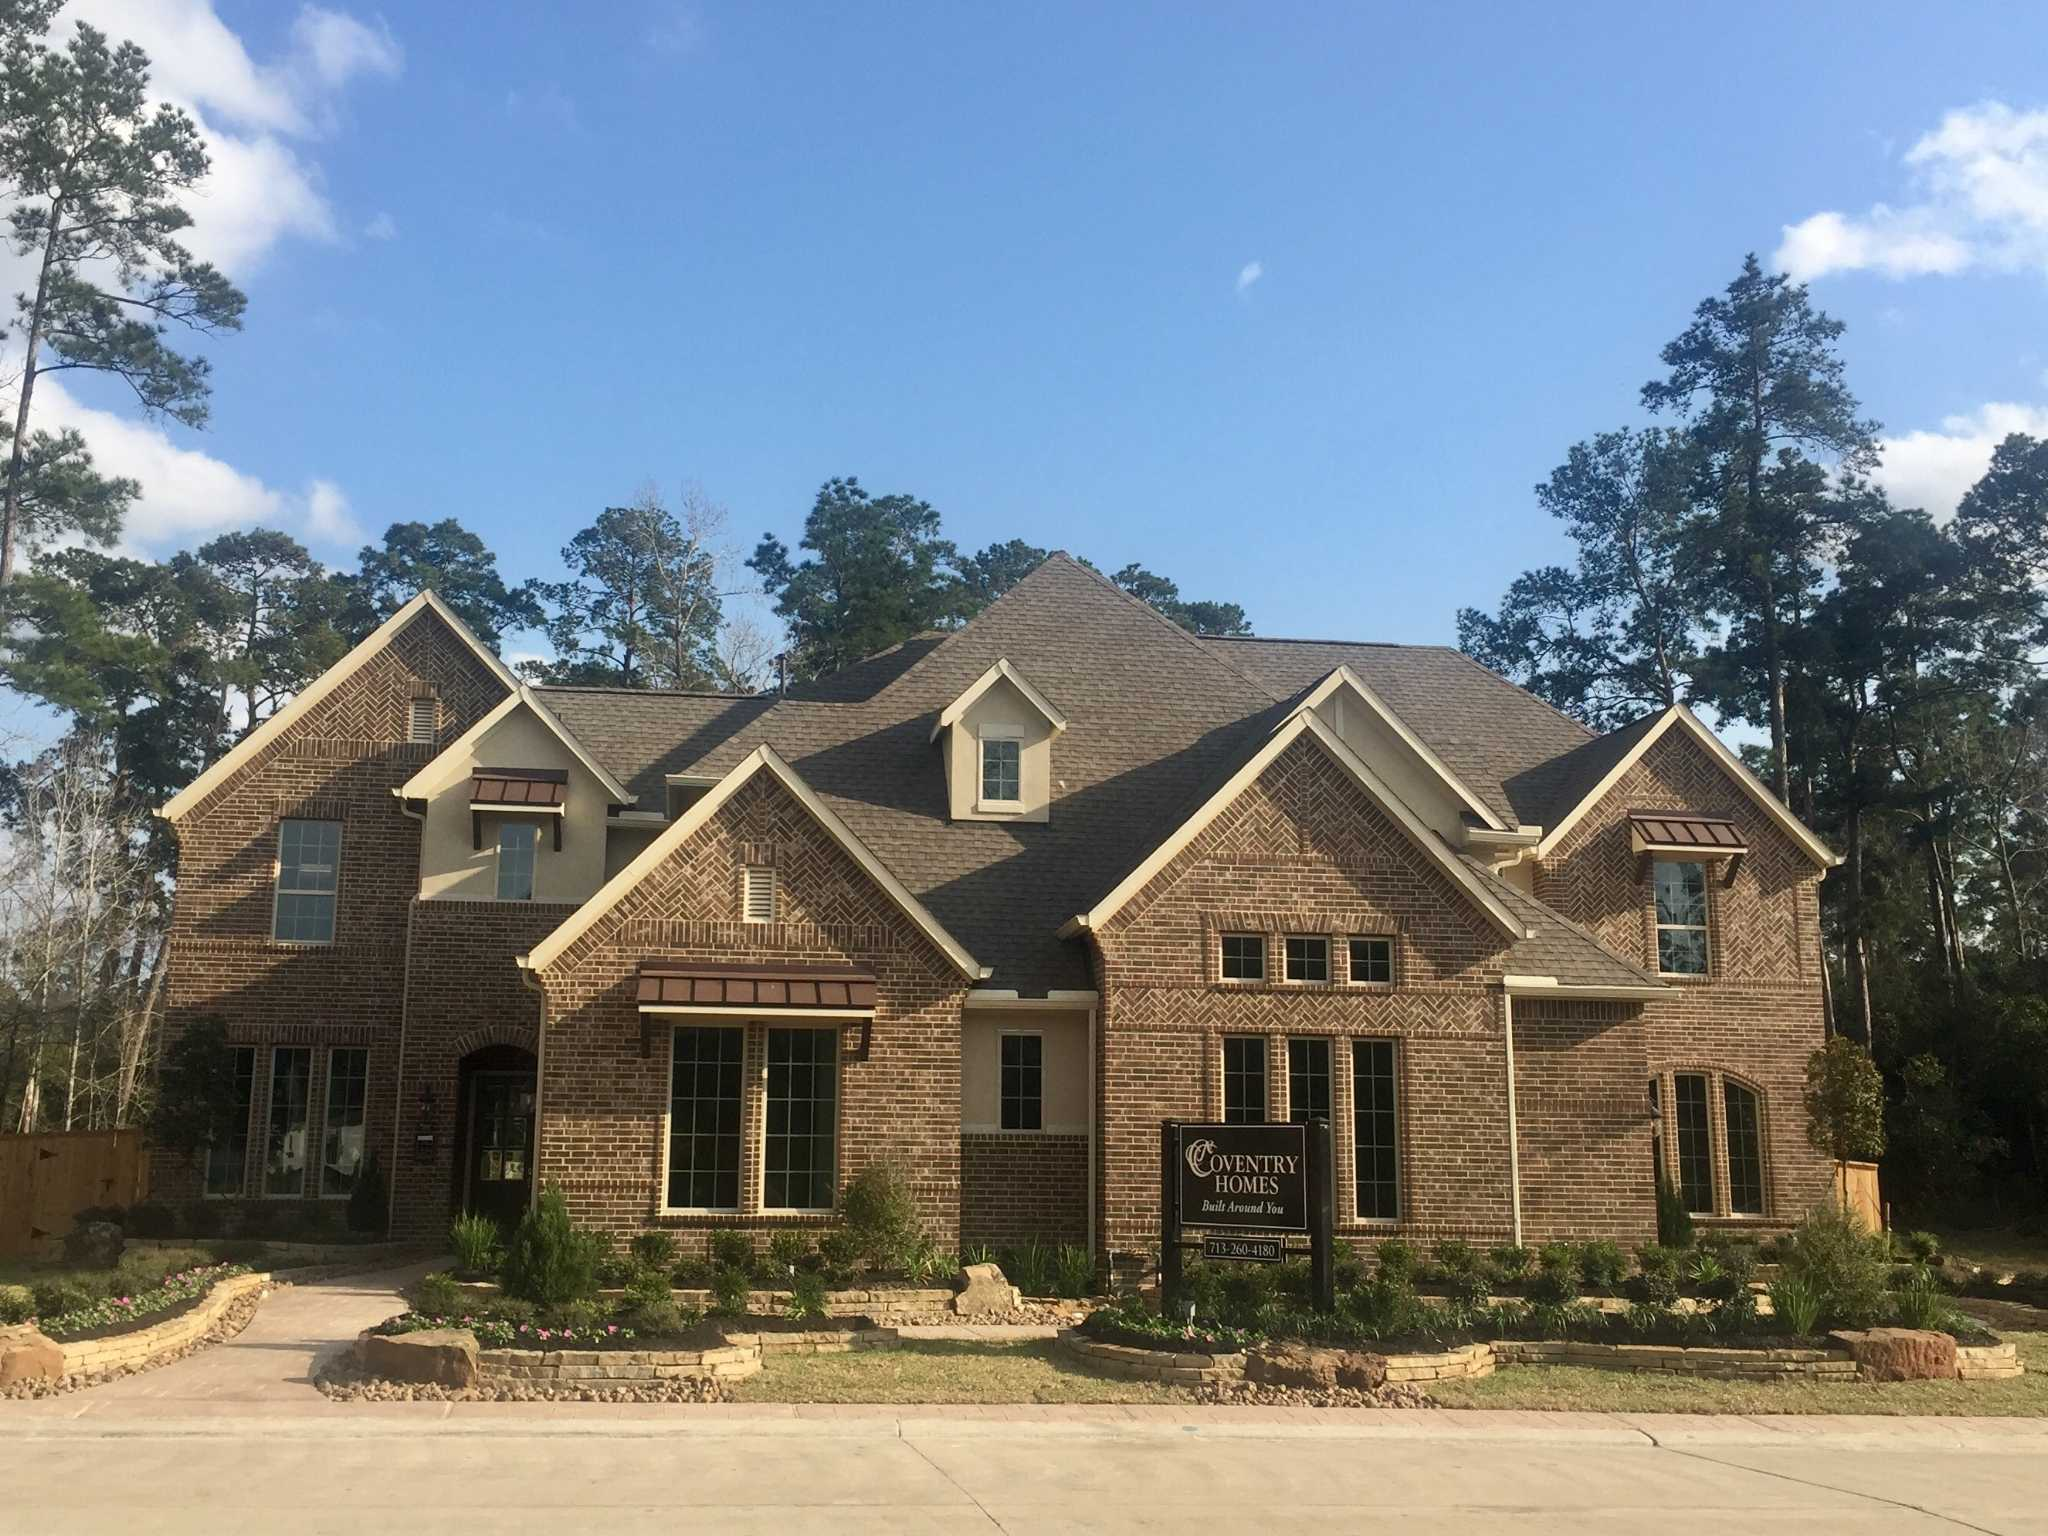 Coventry homes 39 new look luxury townhomes make houston for Luxury townhomes for sale